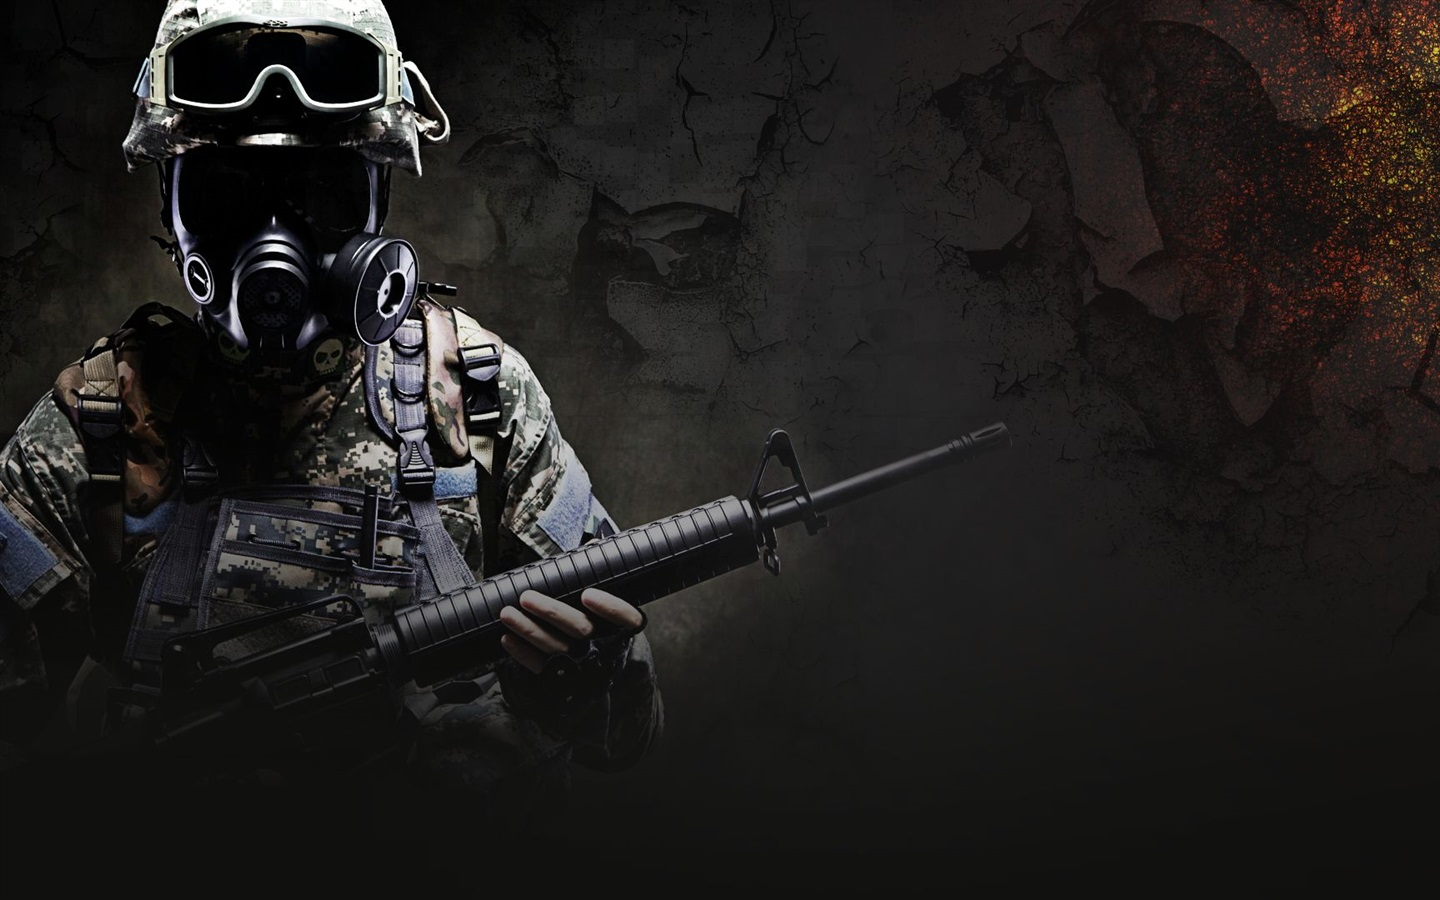 Wallpaper Cs Go Soldier 1920x1080 Full Hd 2k Picture Image